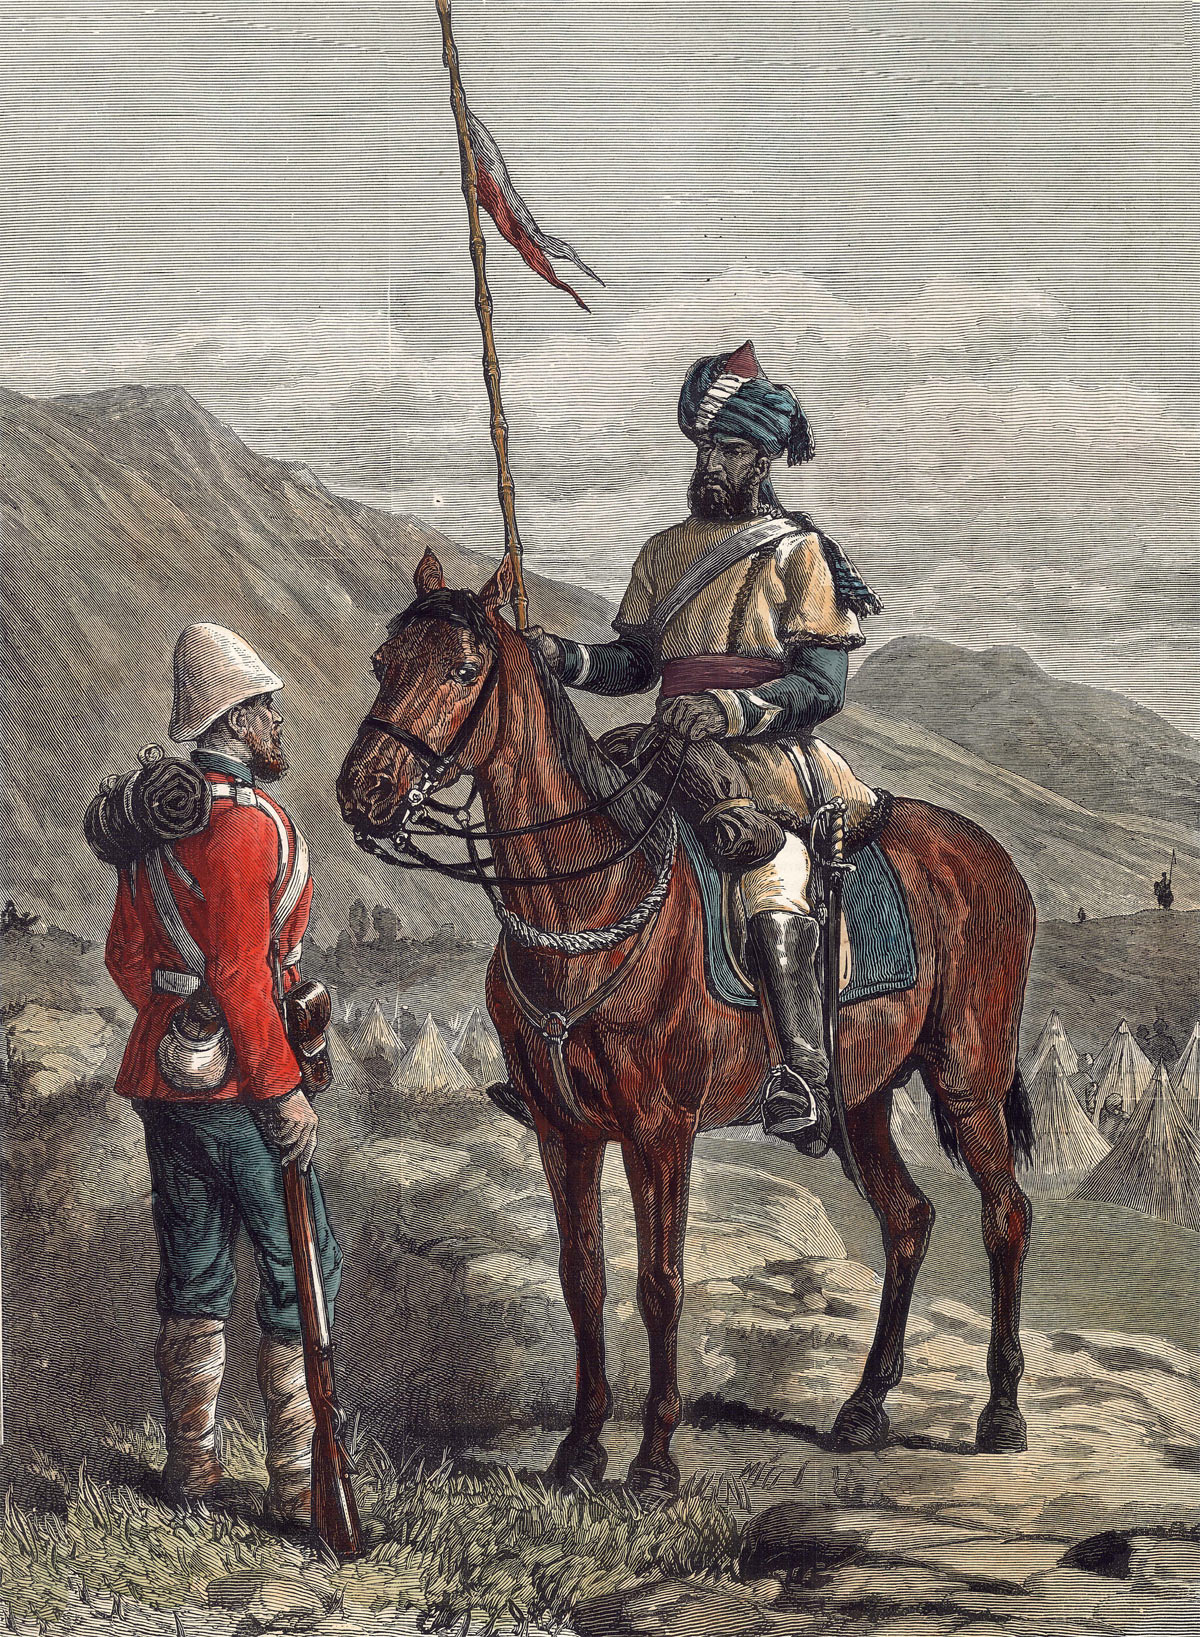 British infantryman and a Bengal Sowar: Battle of Ahmed Khel on 19th April 1880 in the Second Afghan War